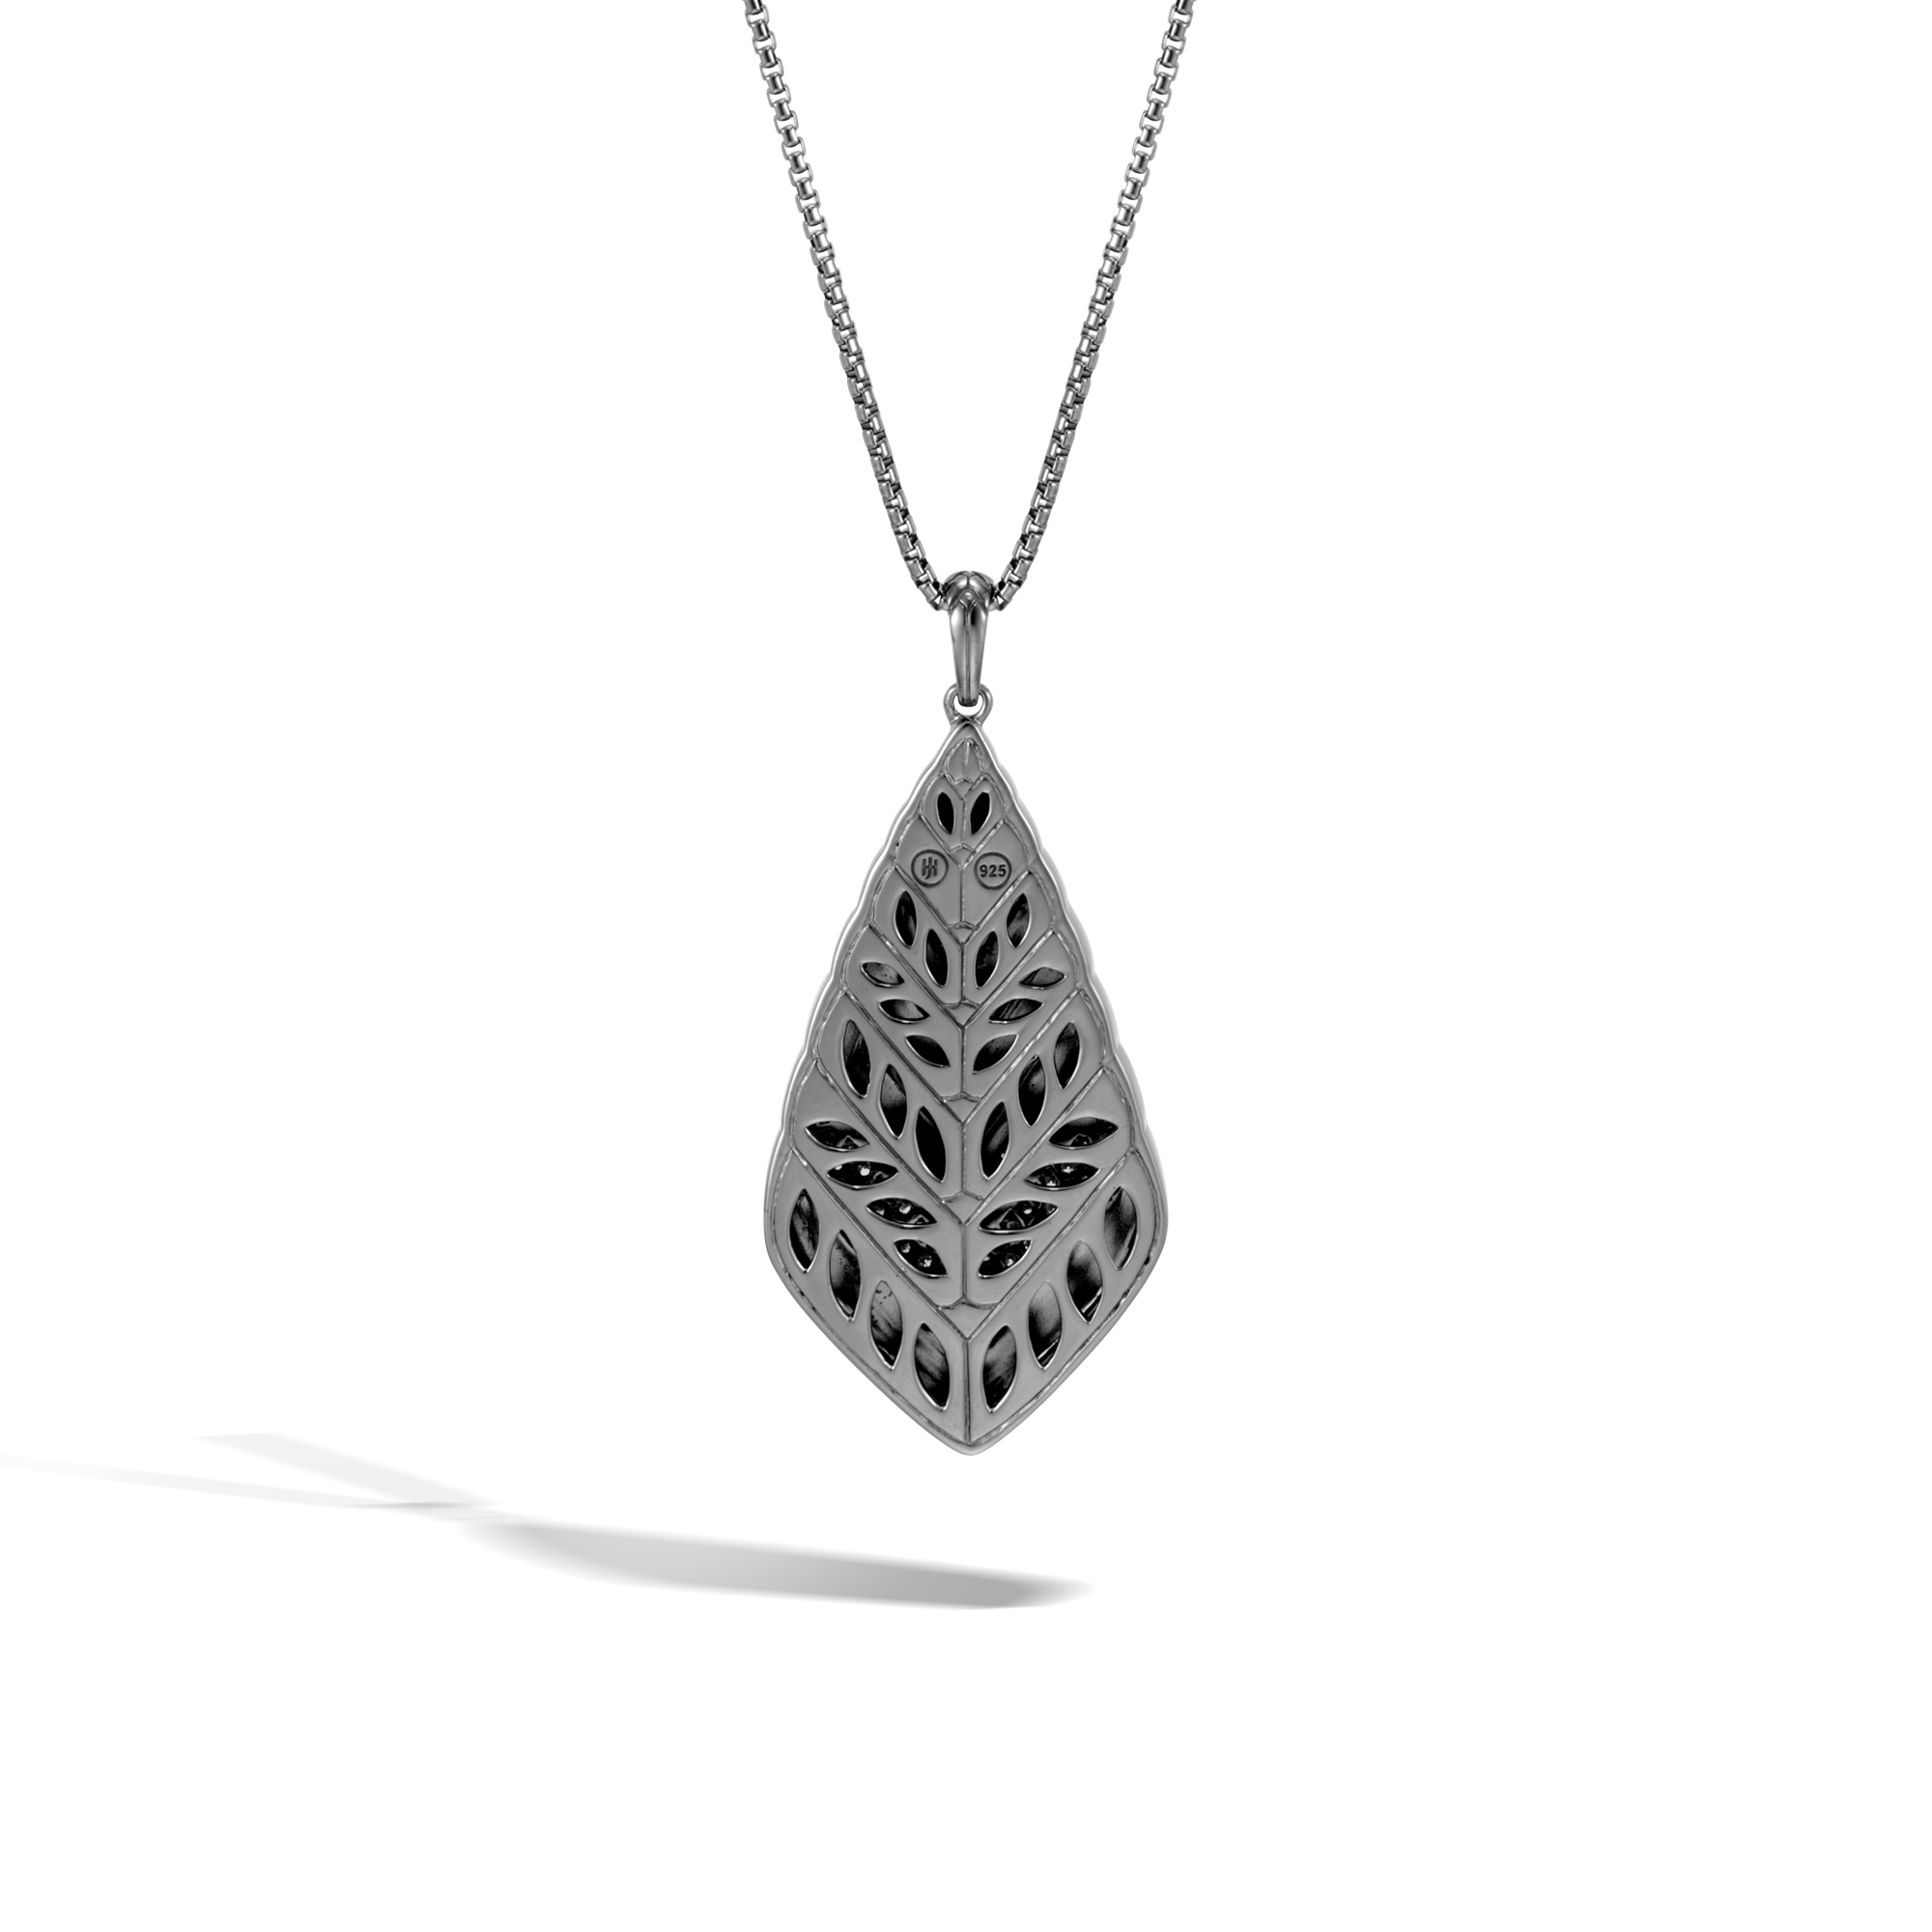 Modern Chain Pendant Necklace in Blackened Silver, Diamonds, White Diamond, large